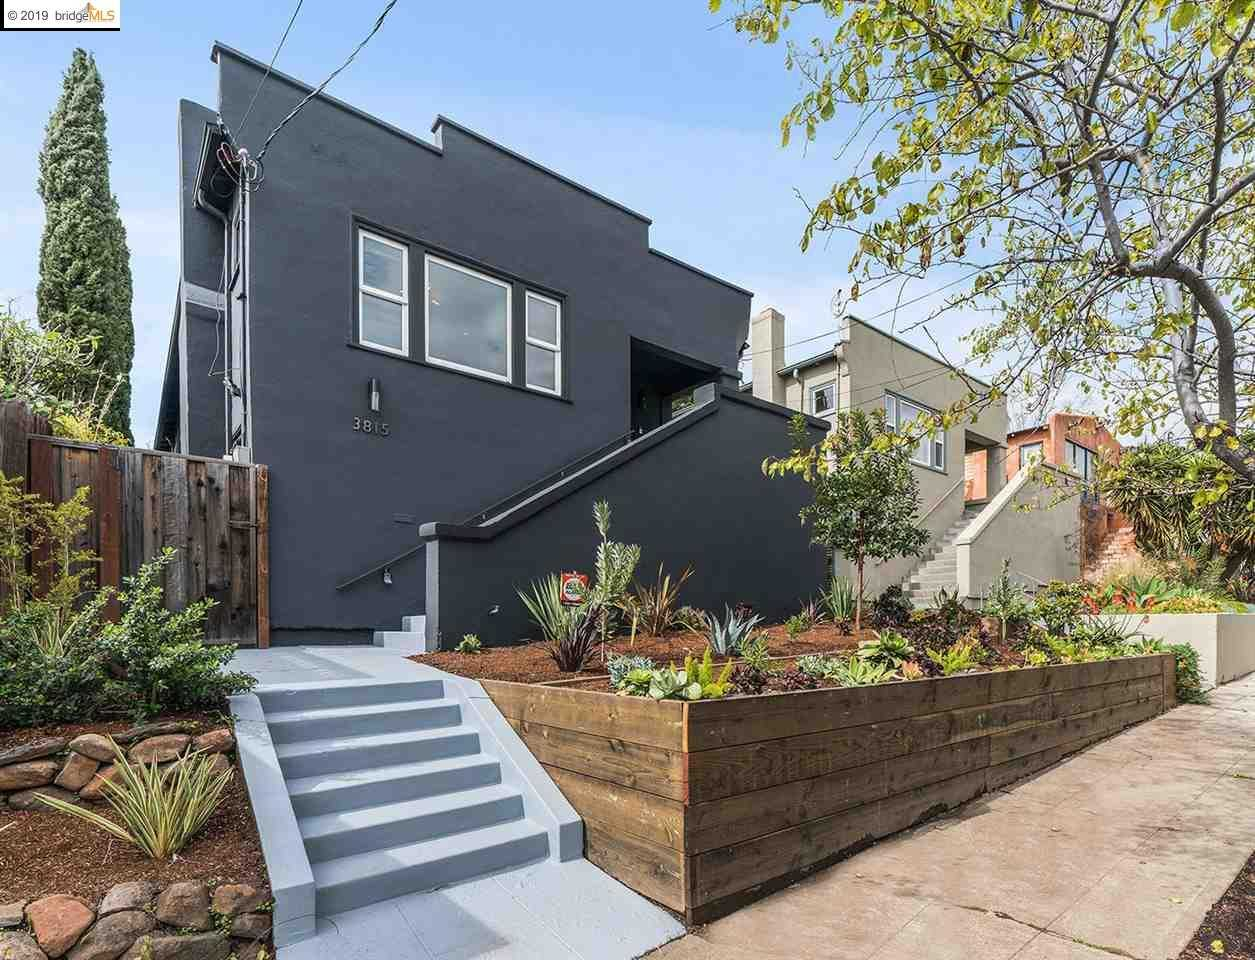 3815 Coolidge Ave OAKLAND, CA 94602